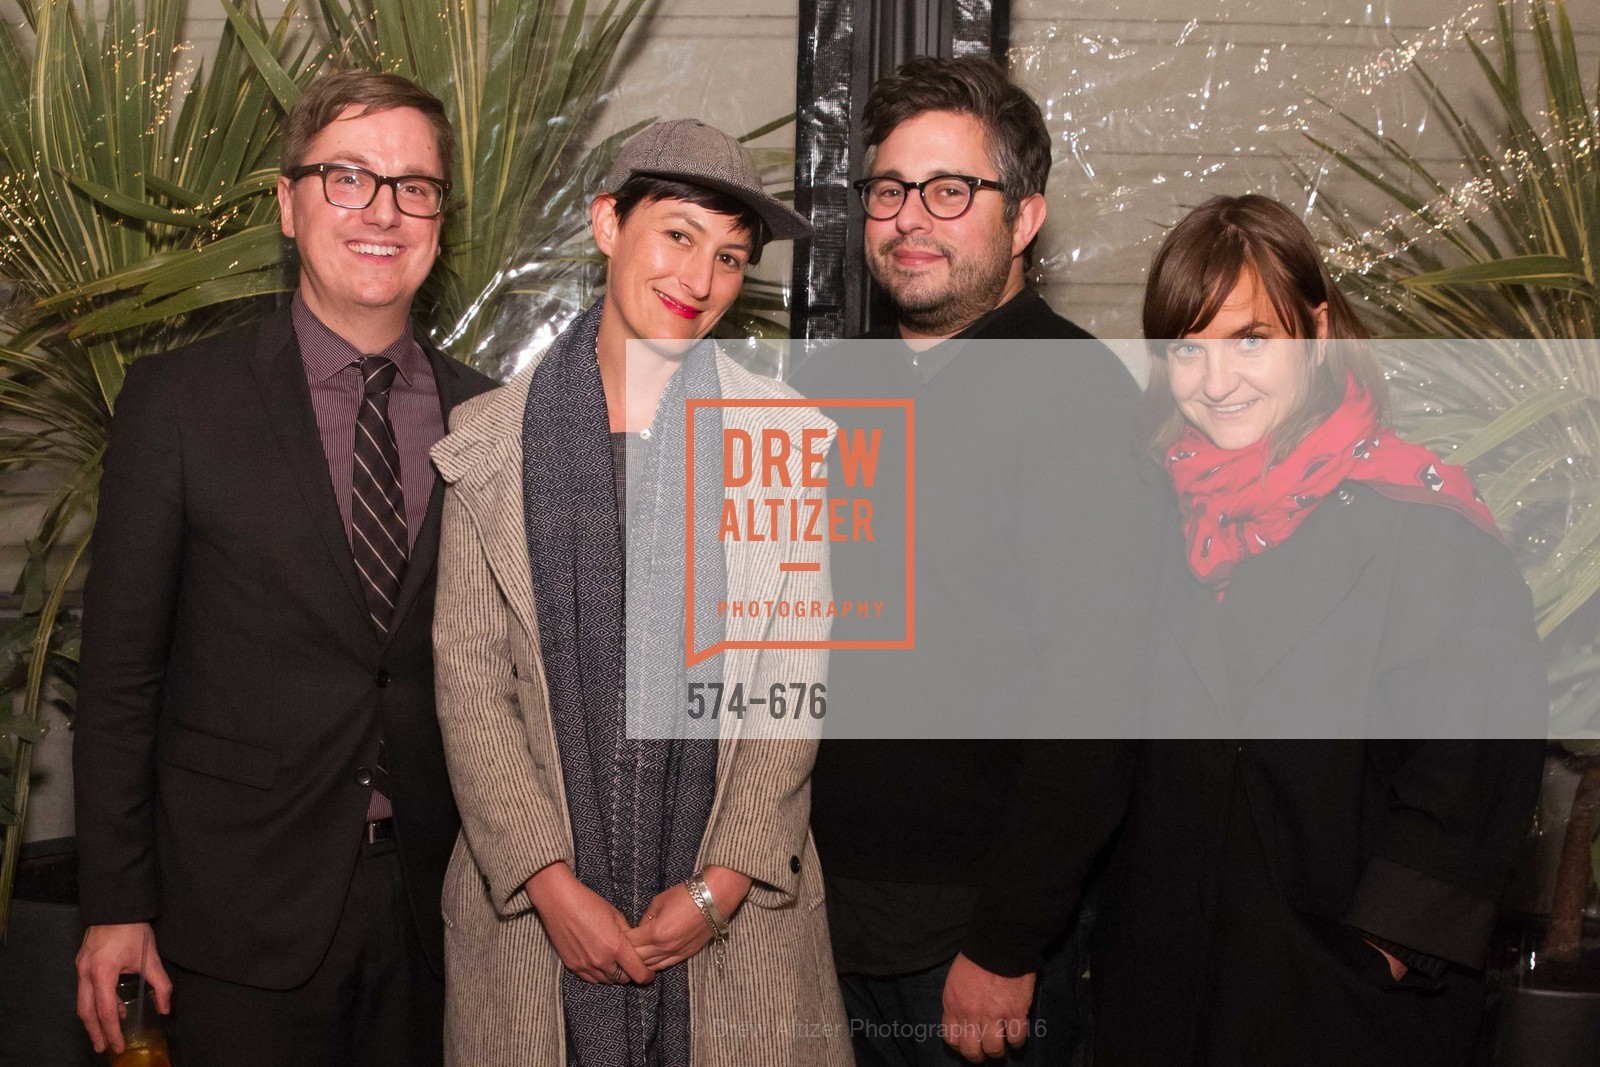 Tom DeCaigny, Brooke Lane, Matthew Goudeau, Evans Hankey, 500 Capp Street Preview Reception, 500 Capp Street Foundation. 500 Capp Street, January 7th, 2016,Drew Altizer, Drew Altizer Photography, full-service agency, private events, San Francisco photographer, photographer california